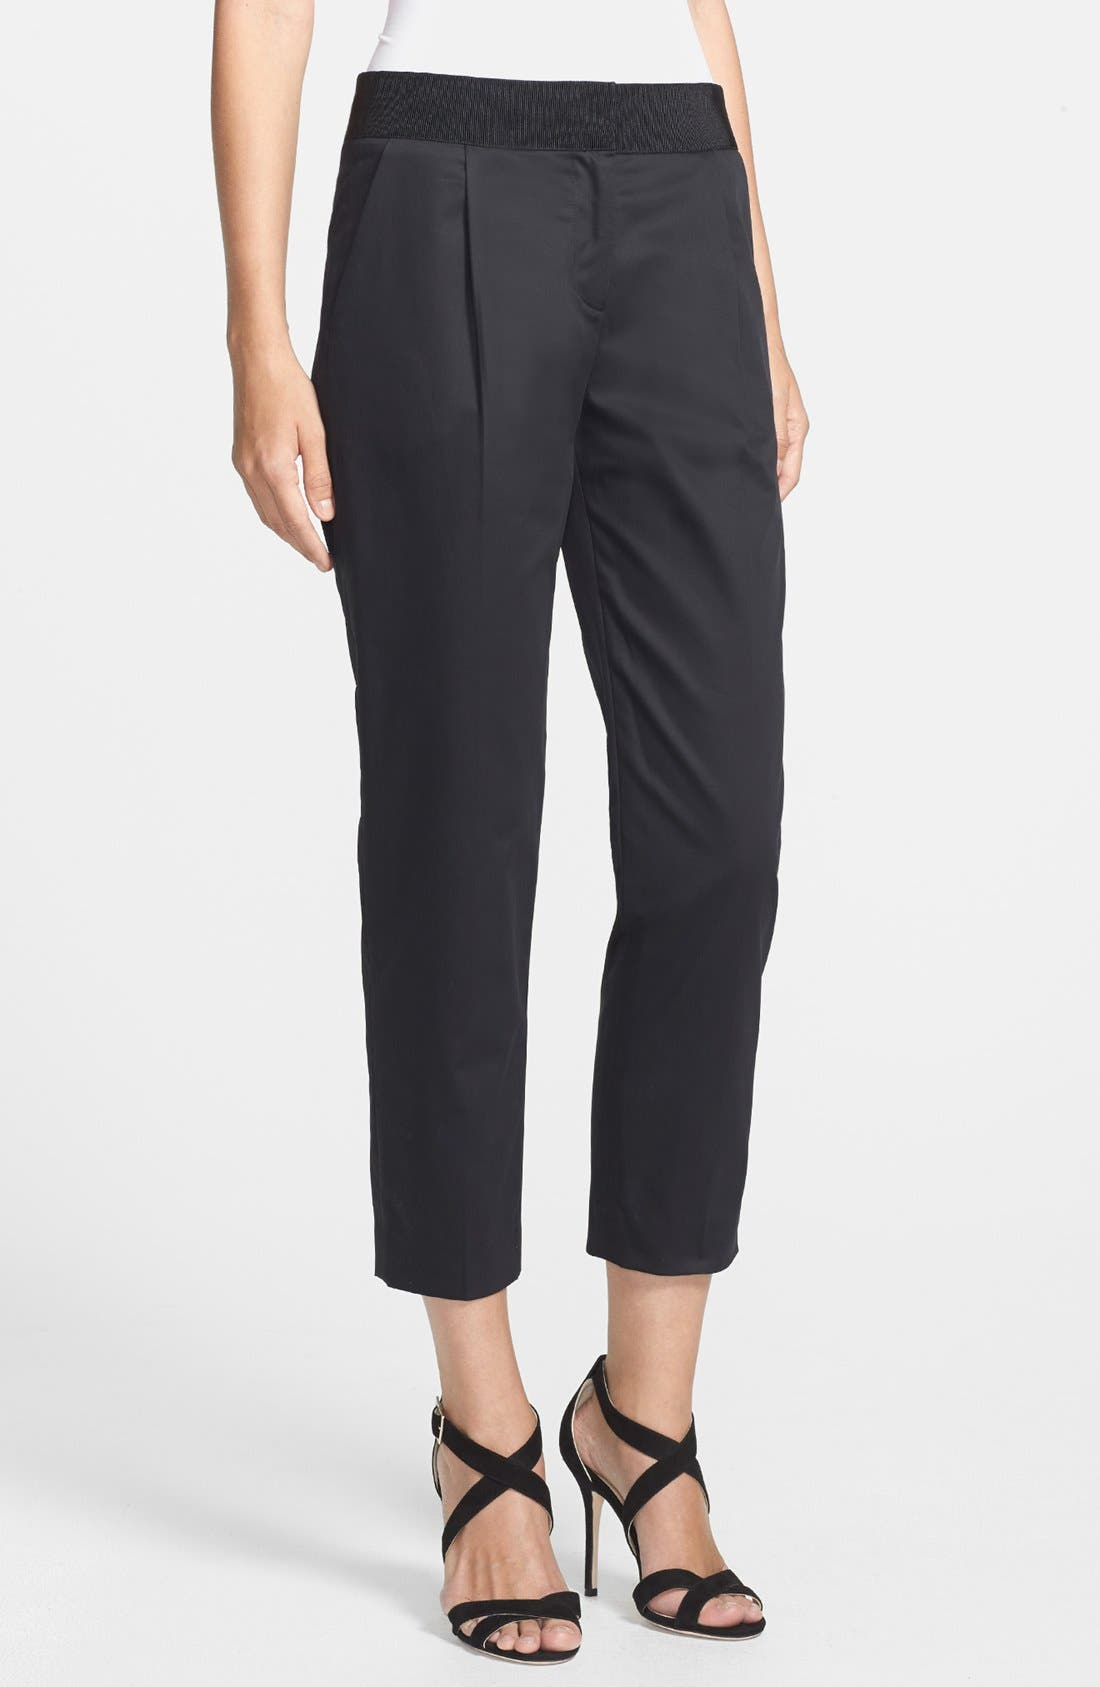 Alternate Image 1 Selected - Milly 'Laney' Cropped Stretch Cotton Trousers